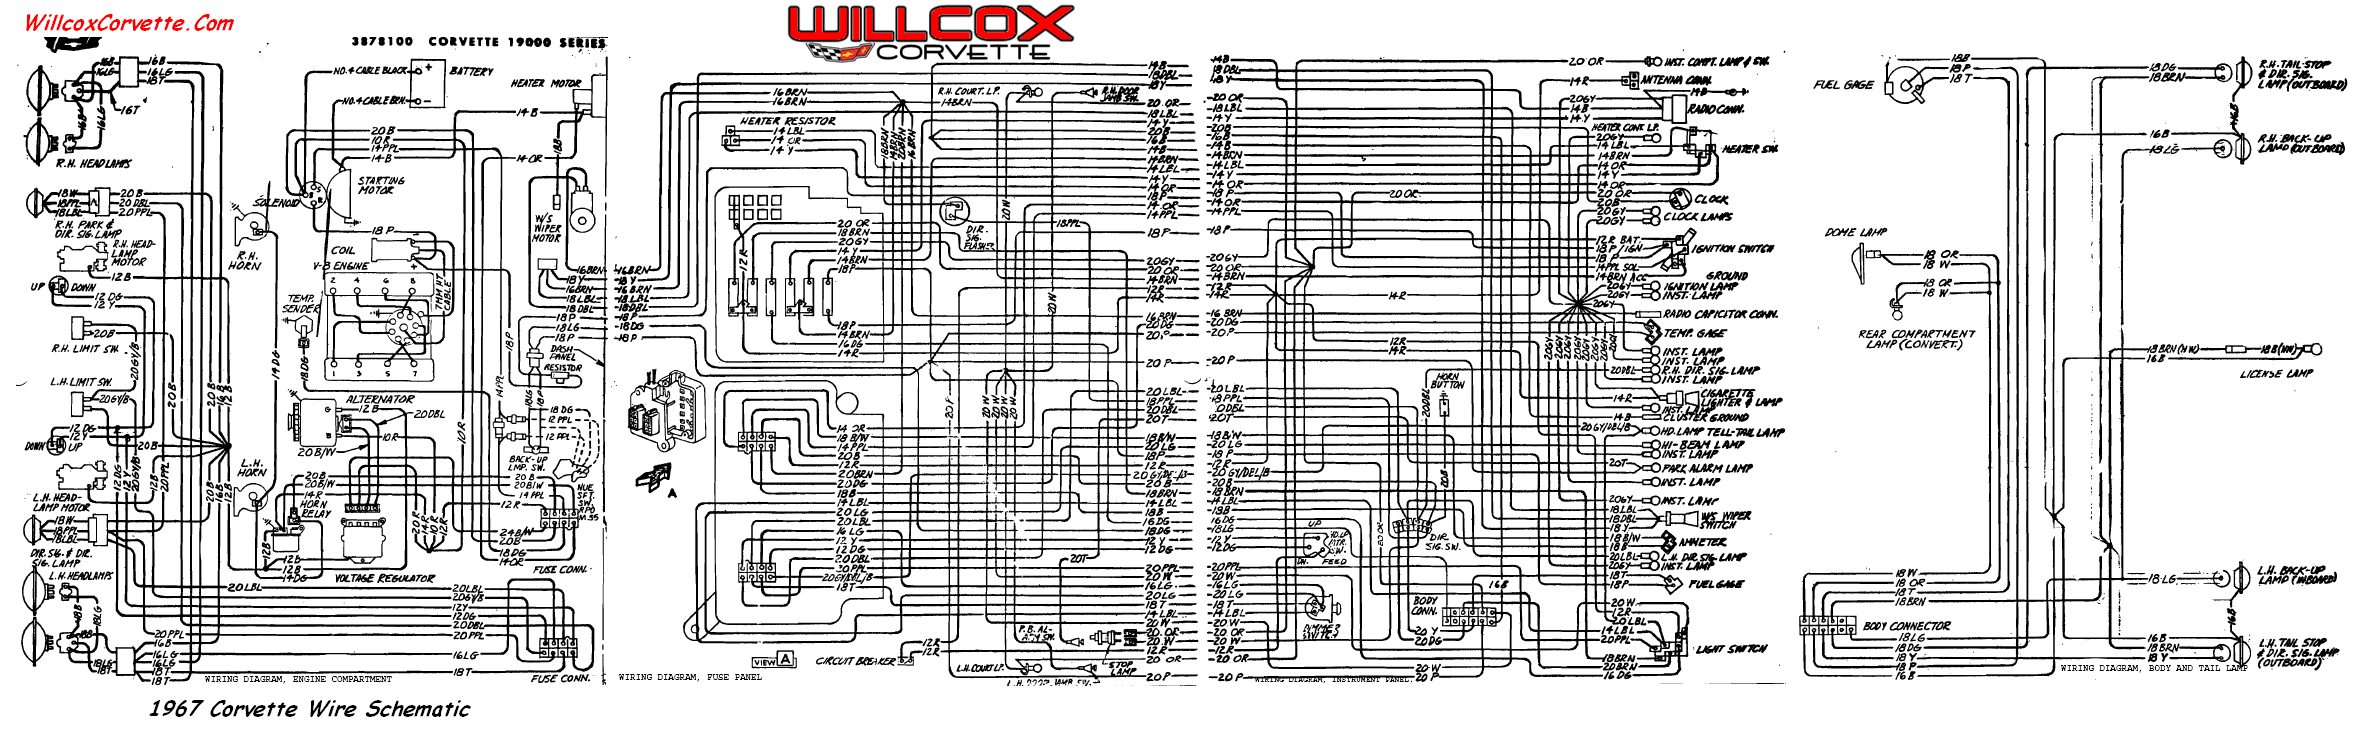 67 wire schematic for tracing wires 1973 corvette wiring schematics on 1973 download wirning diagrams 1998 corvette wiring diagram at et-consult.org